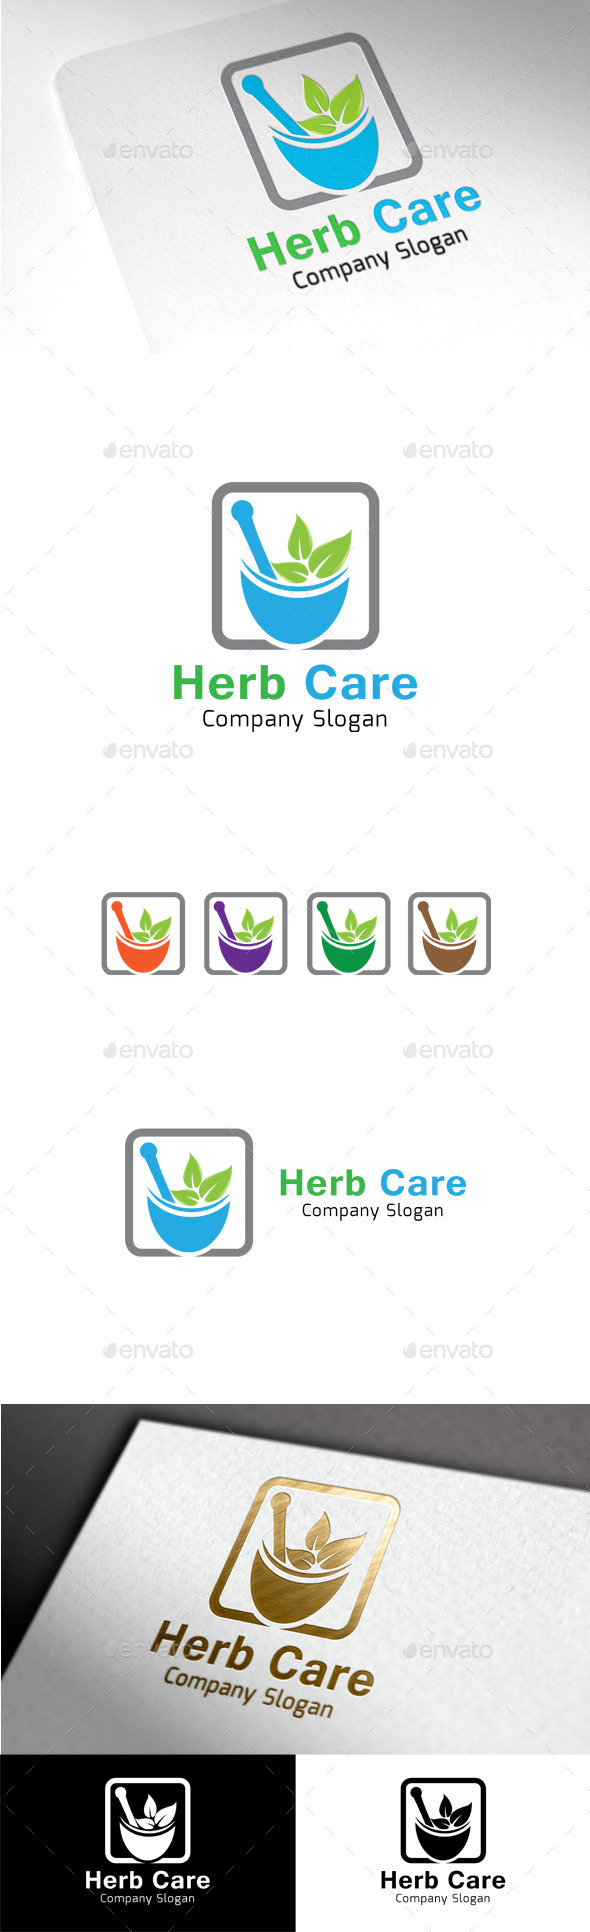 GraphicRiver Herb Care 9999686